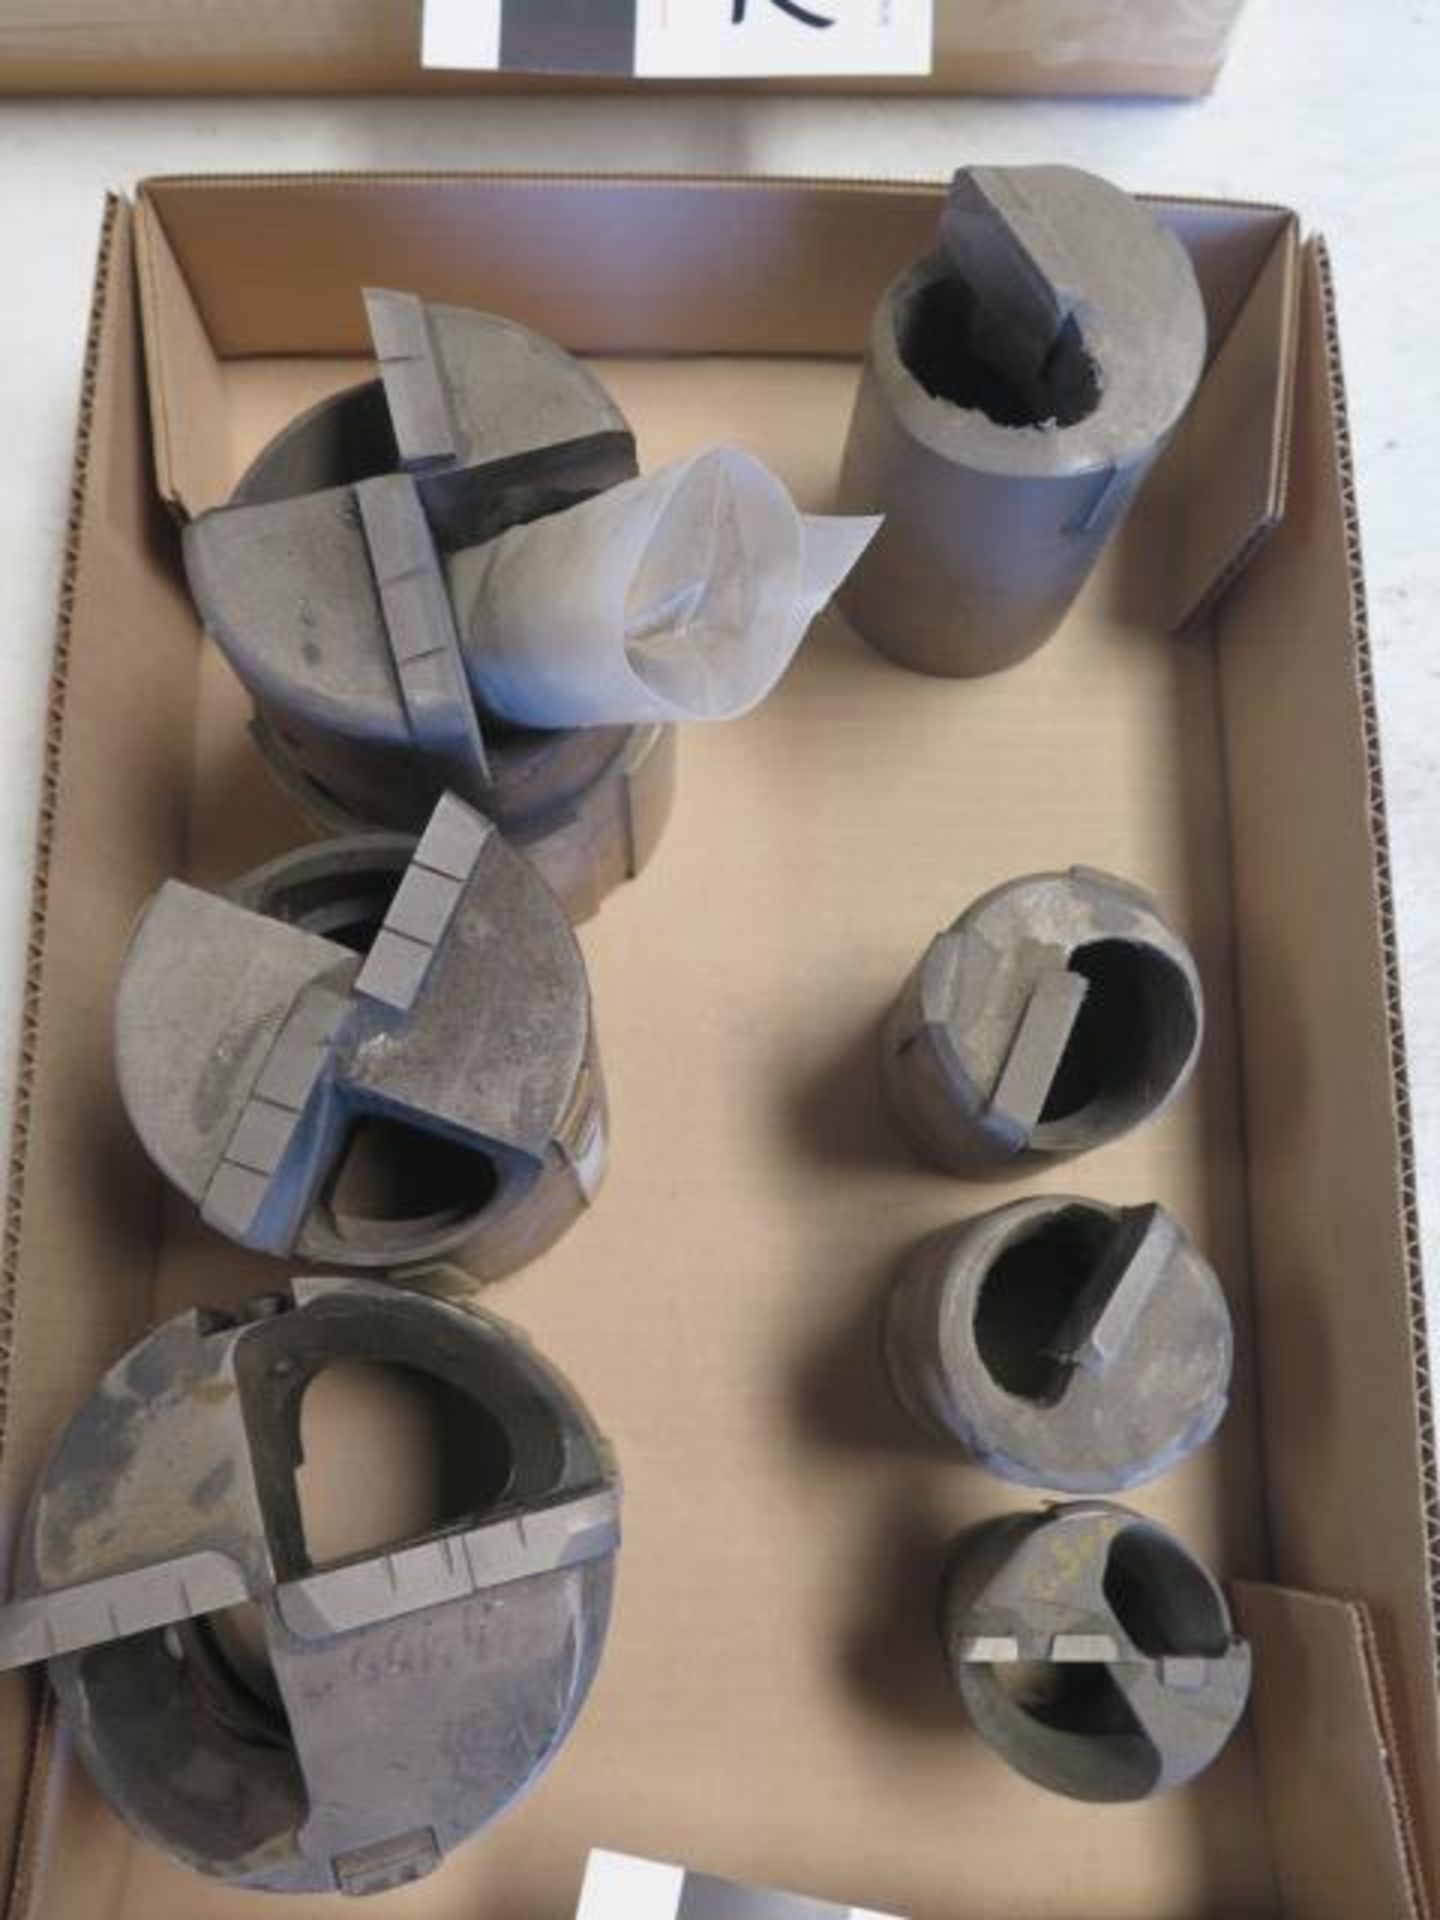 Large Braised Tipped Tube Drills (SOLD AS-IS - NO WARRANTY) - Image 2 of 5